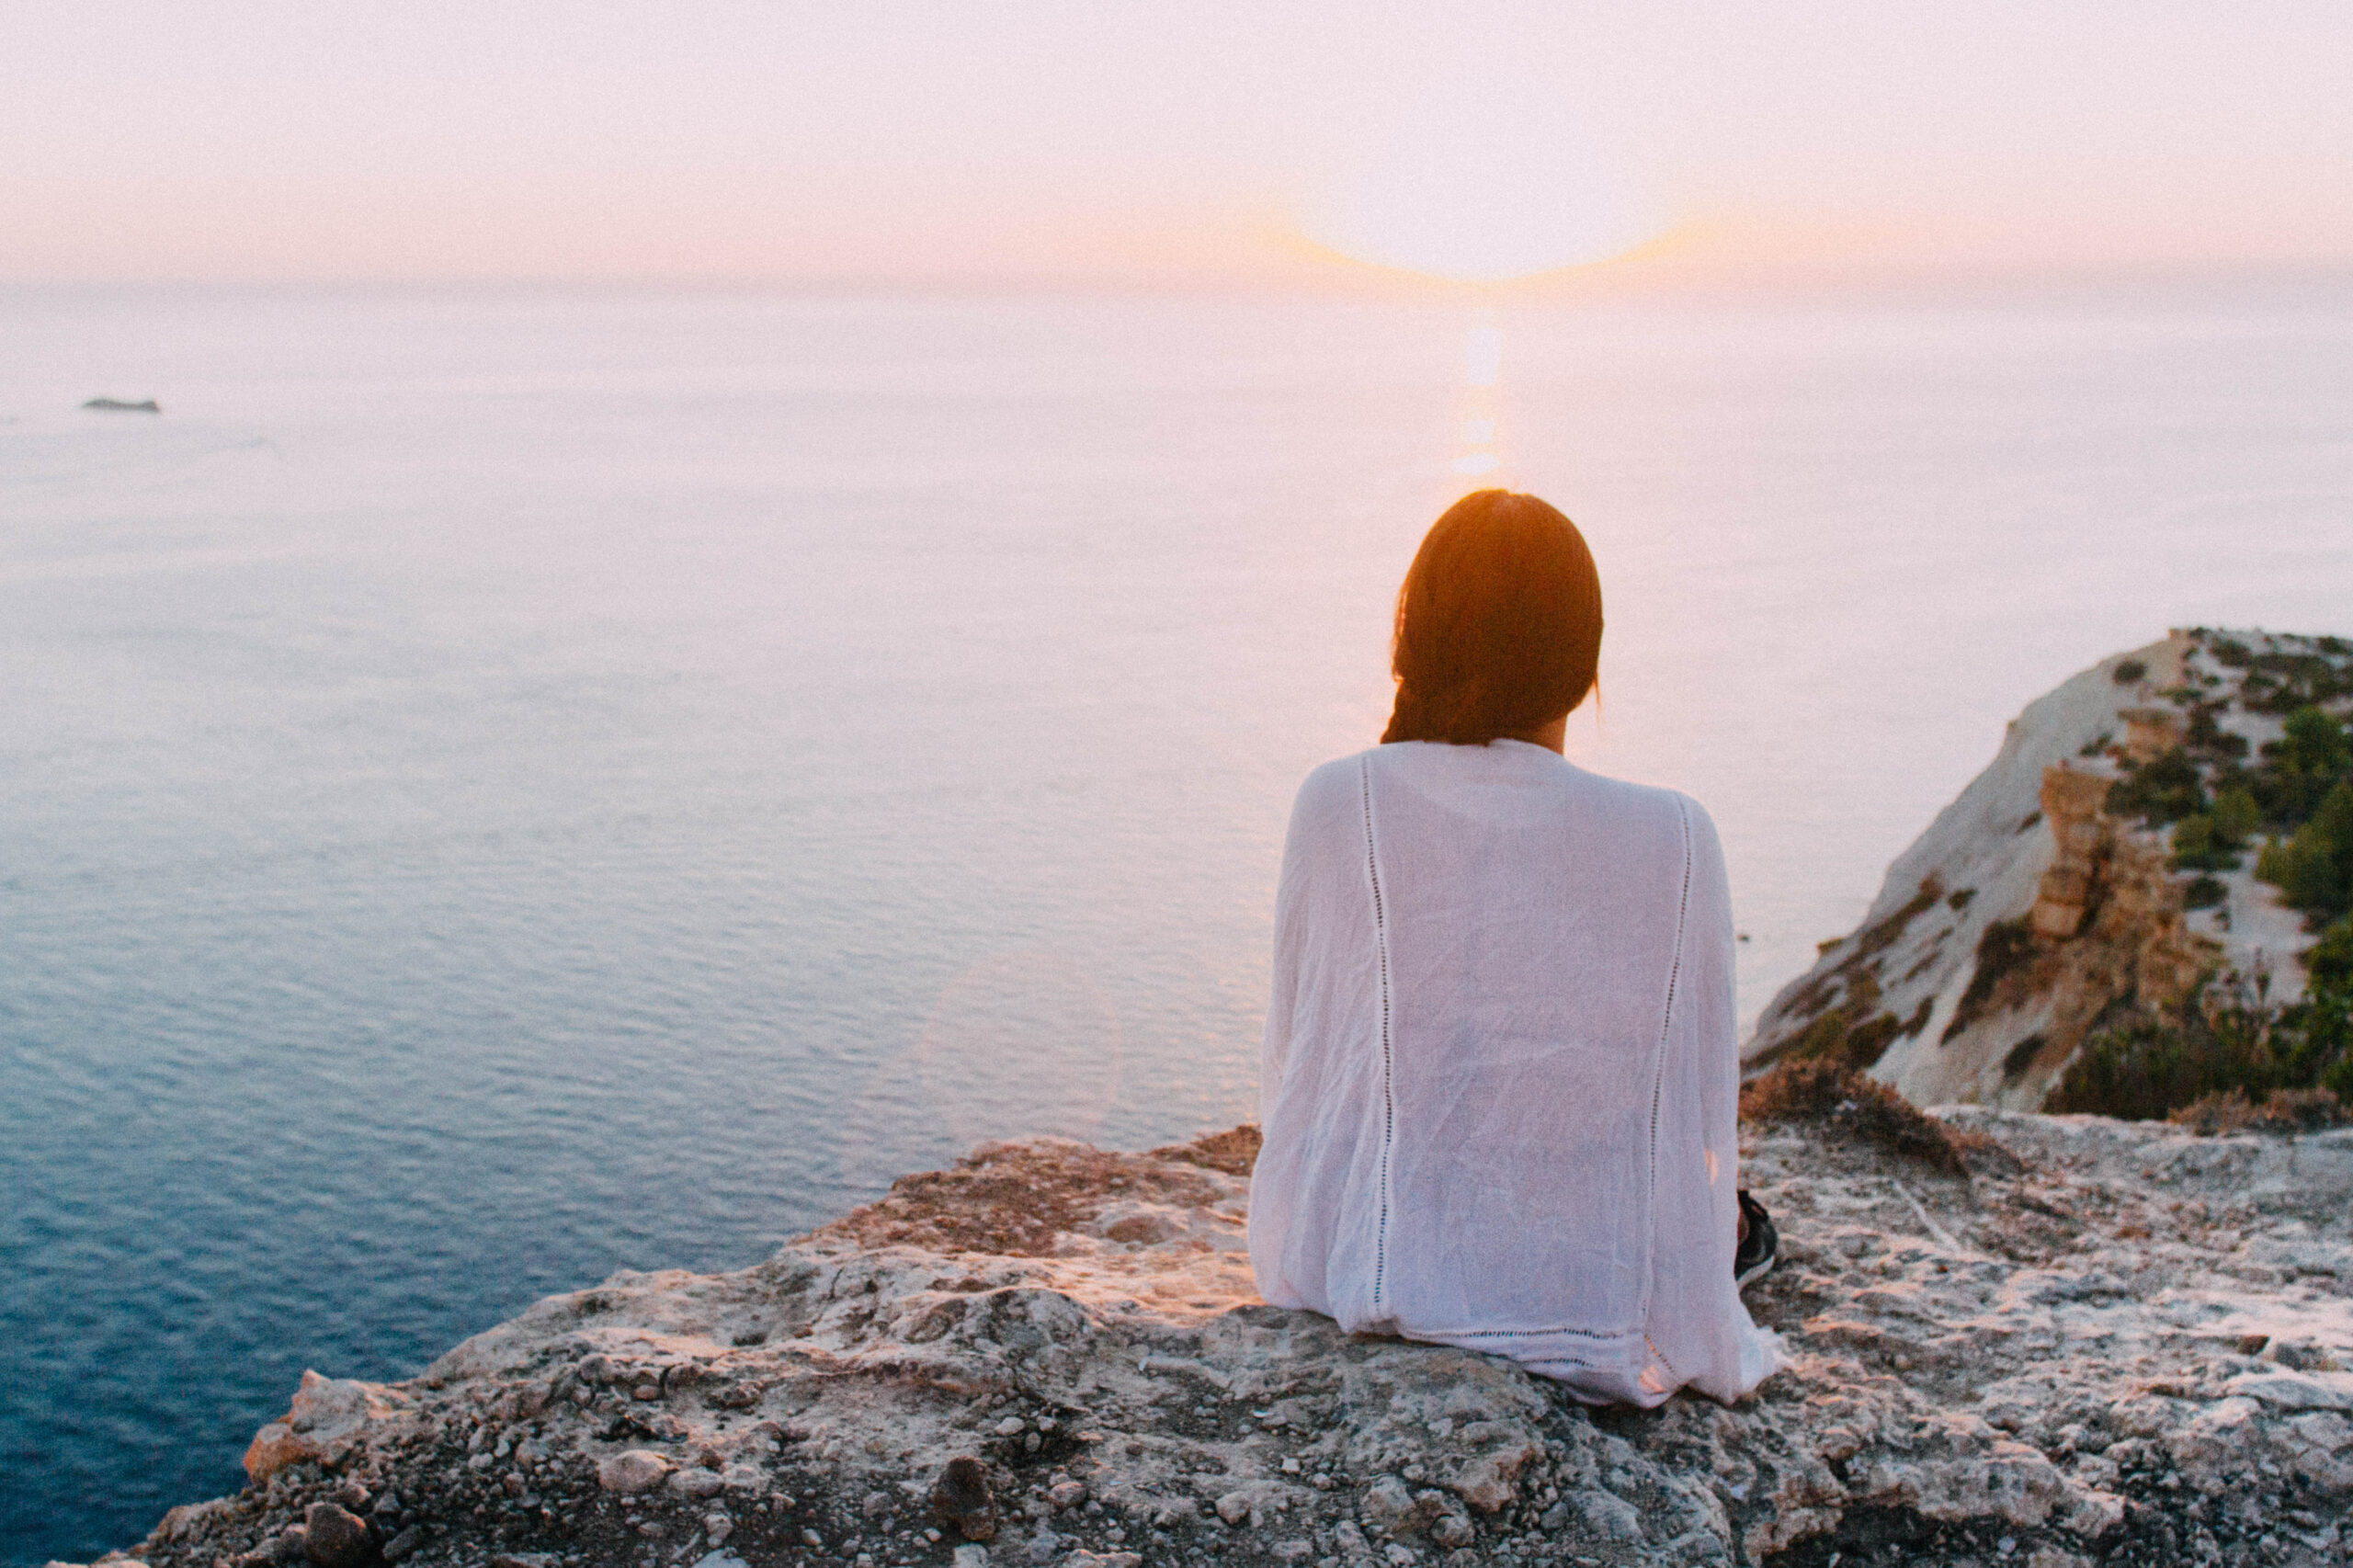 a person sitting on a cliff overlooking the ocean